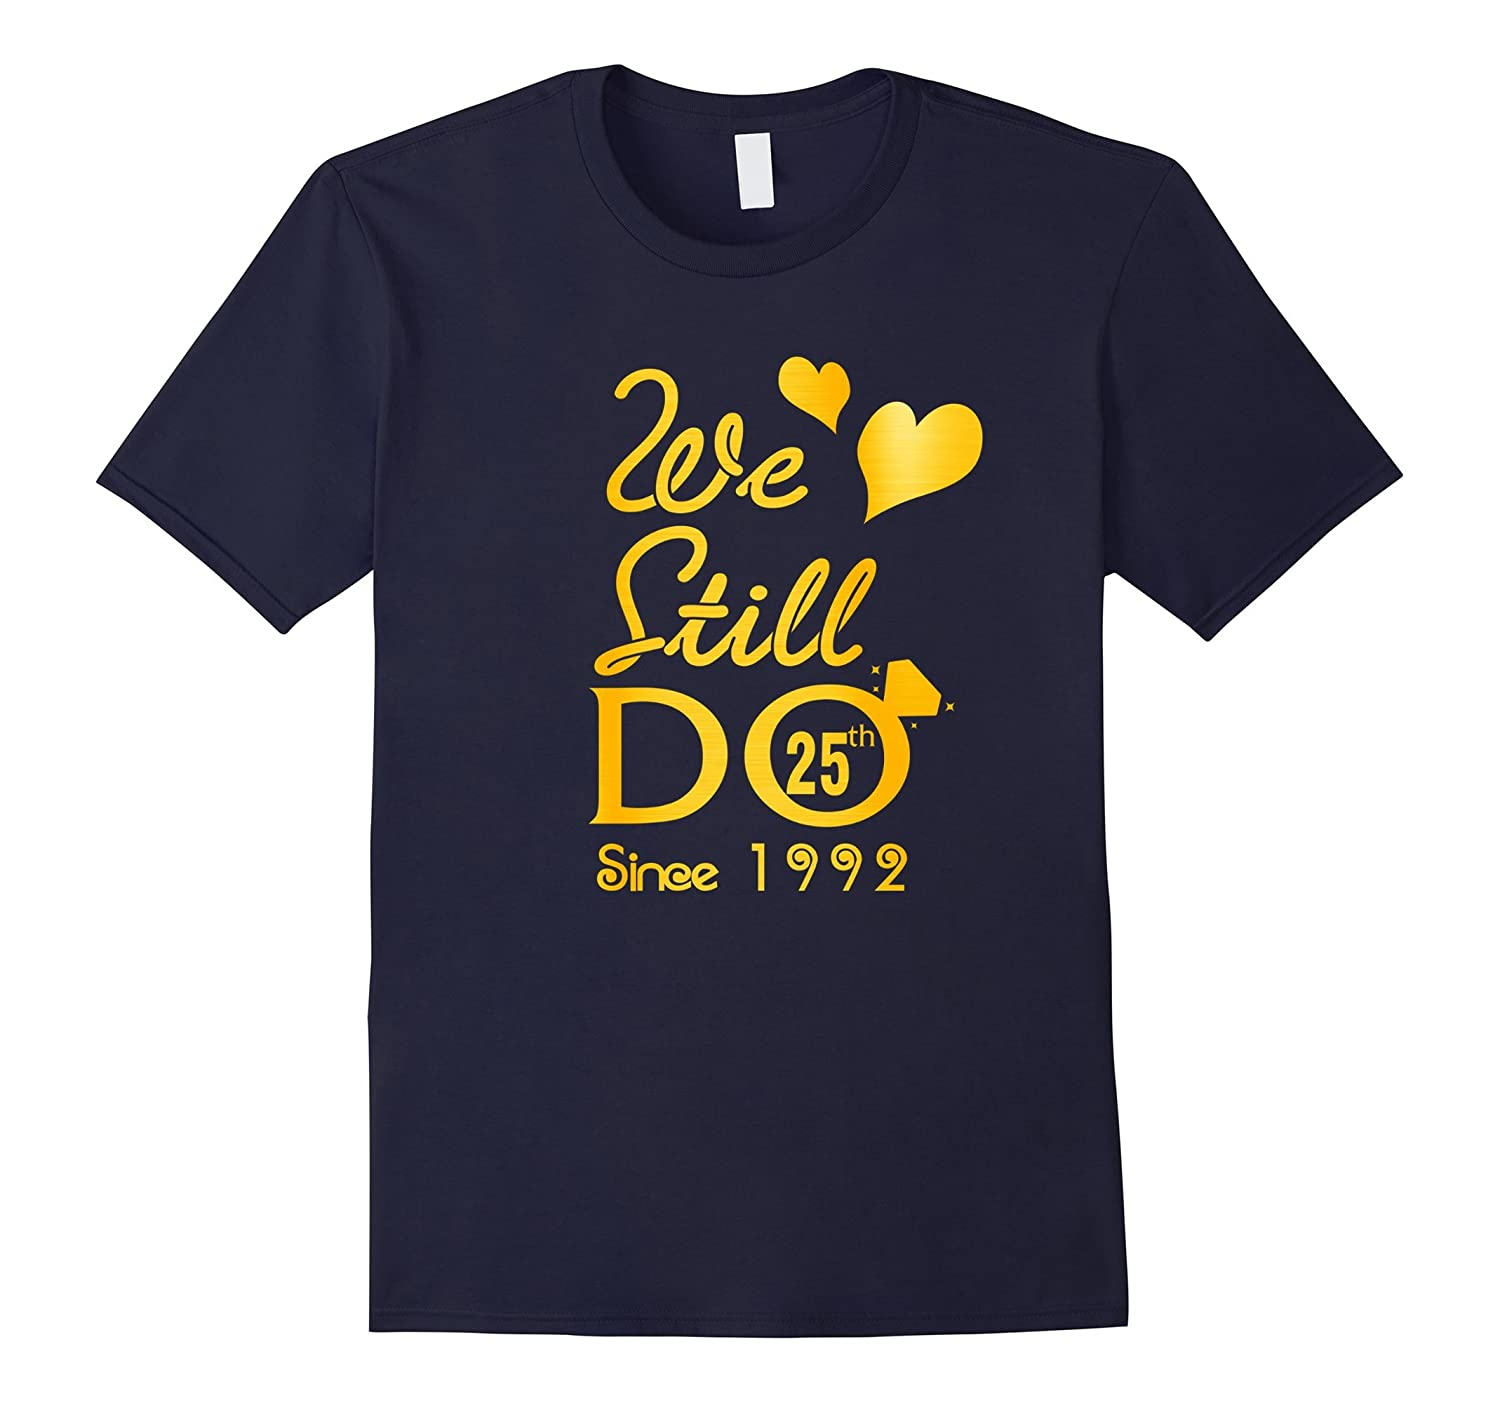 25th Wedding Anniversary Tshirt We Still Do Gifts for Couple-CL